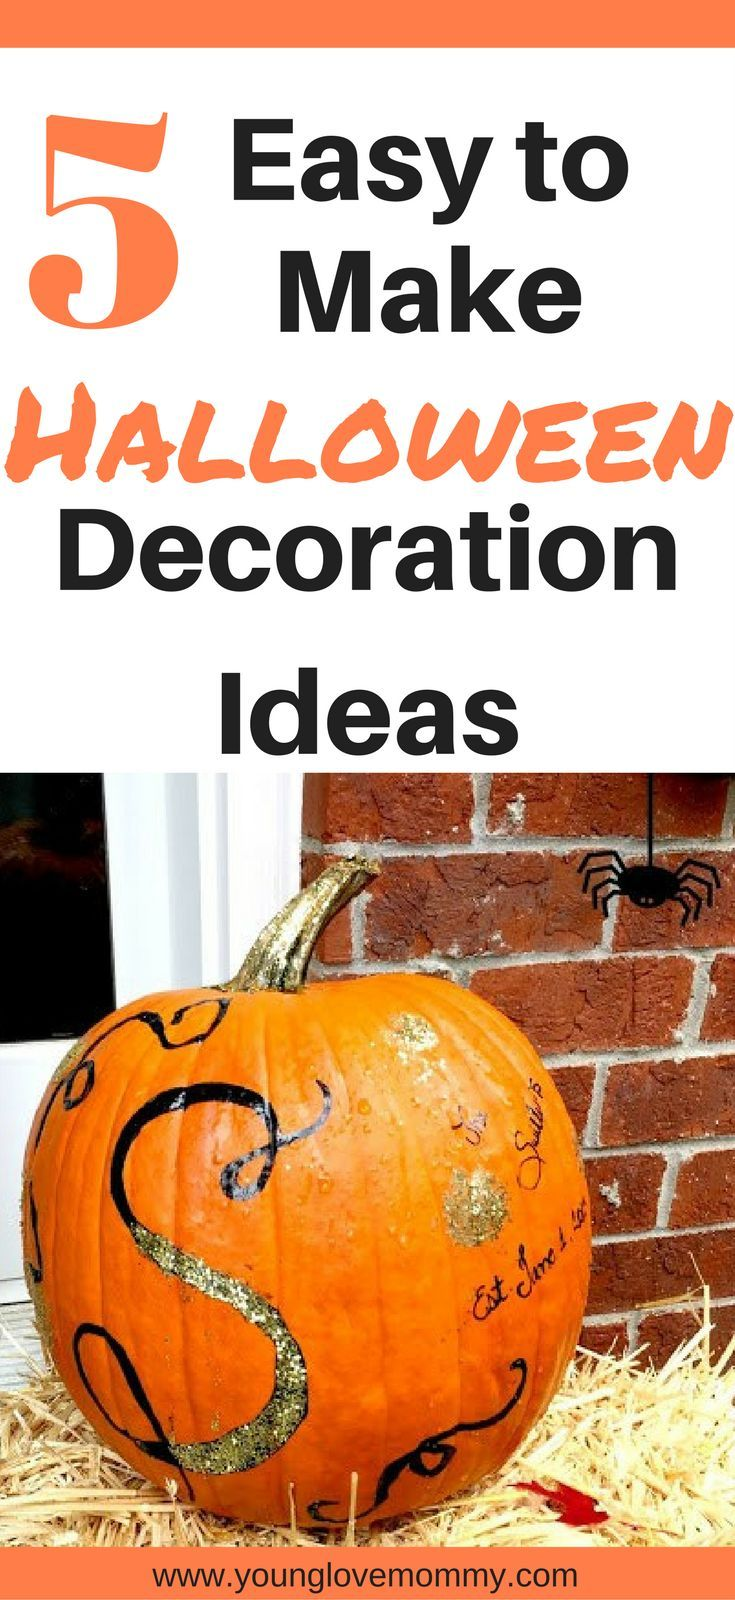 5 Quick Easy Halloween Pumpkin Decorations Raising Children - Use-pumpkins-to-decorate-your-house-for-halloween